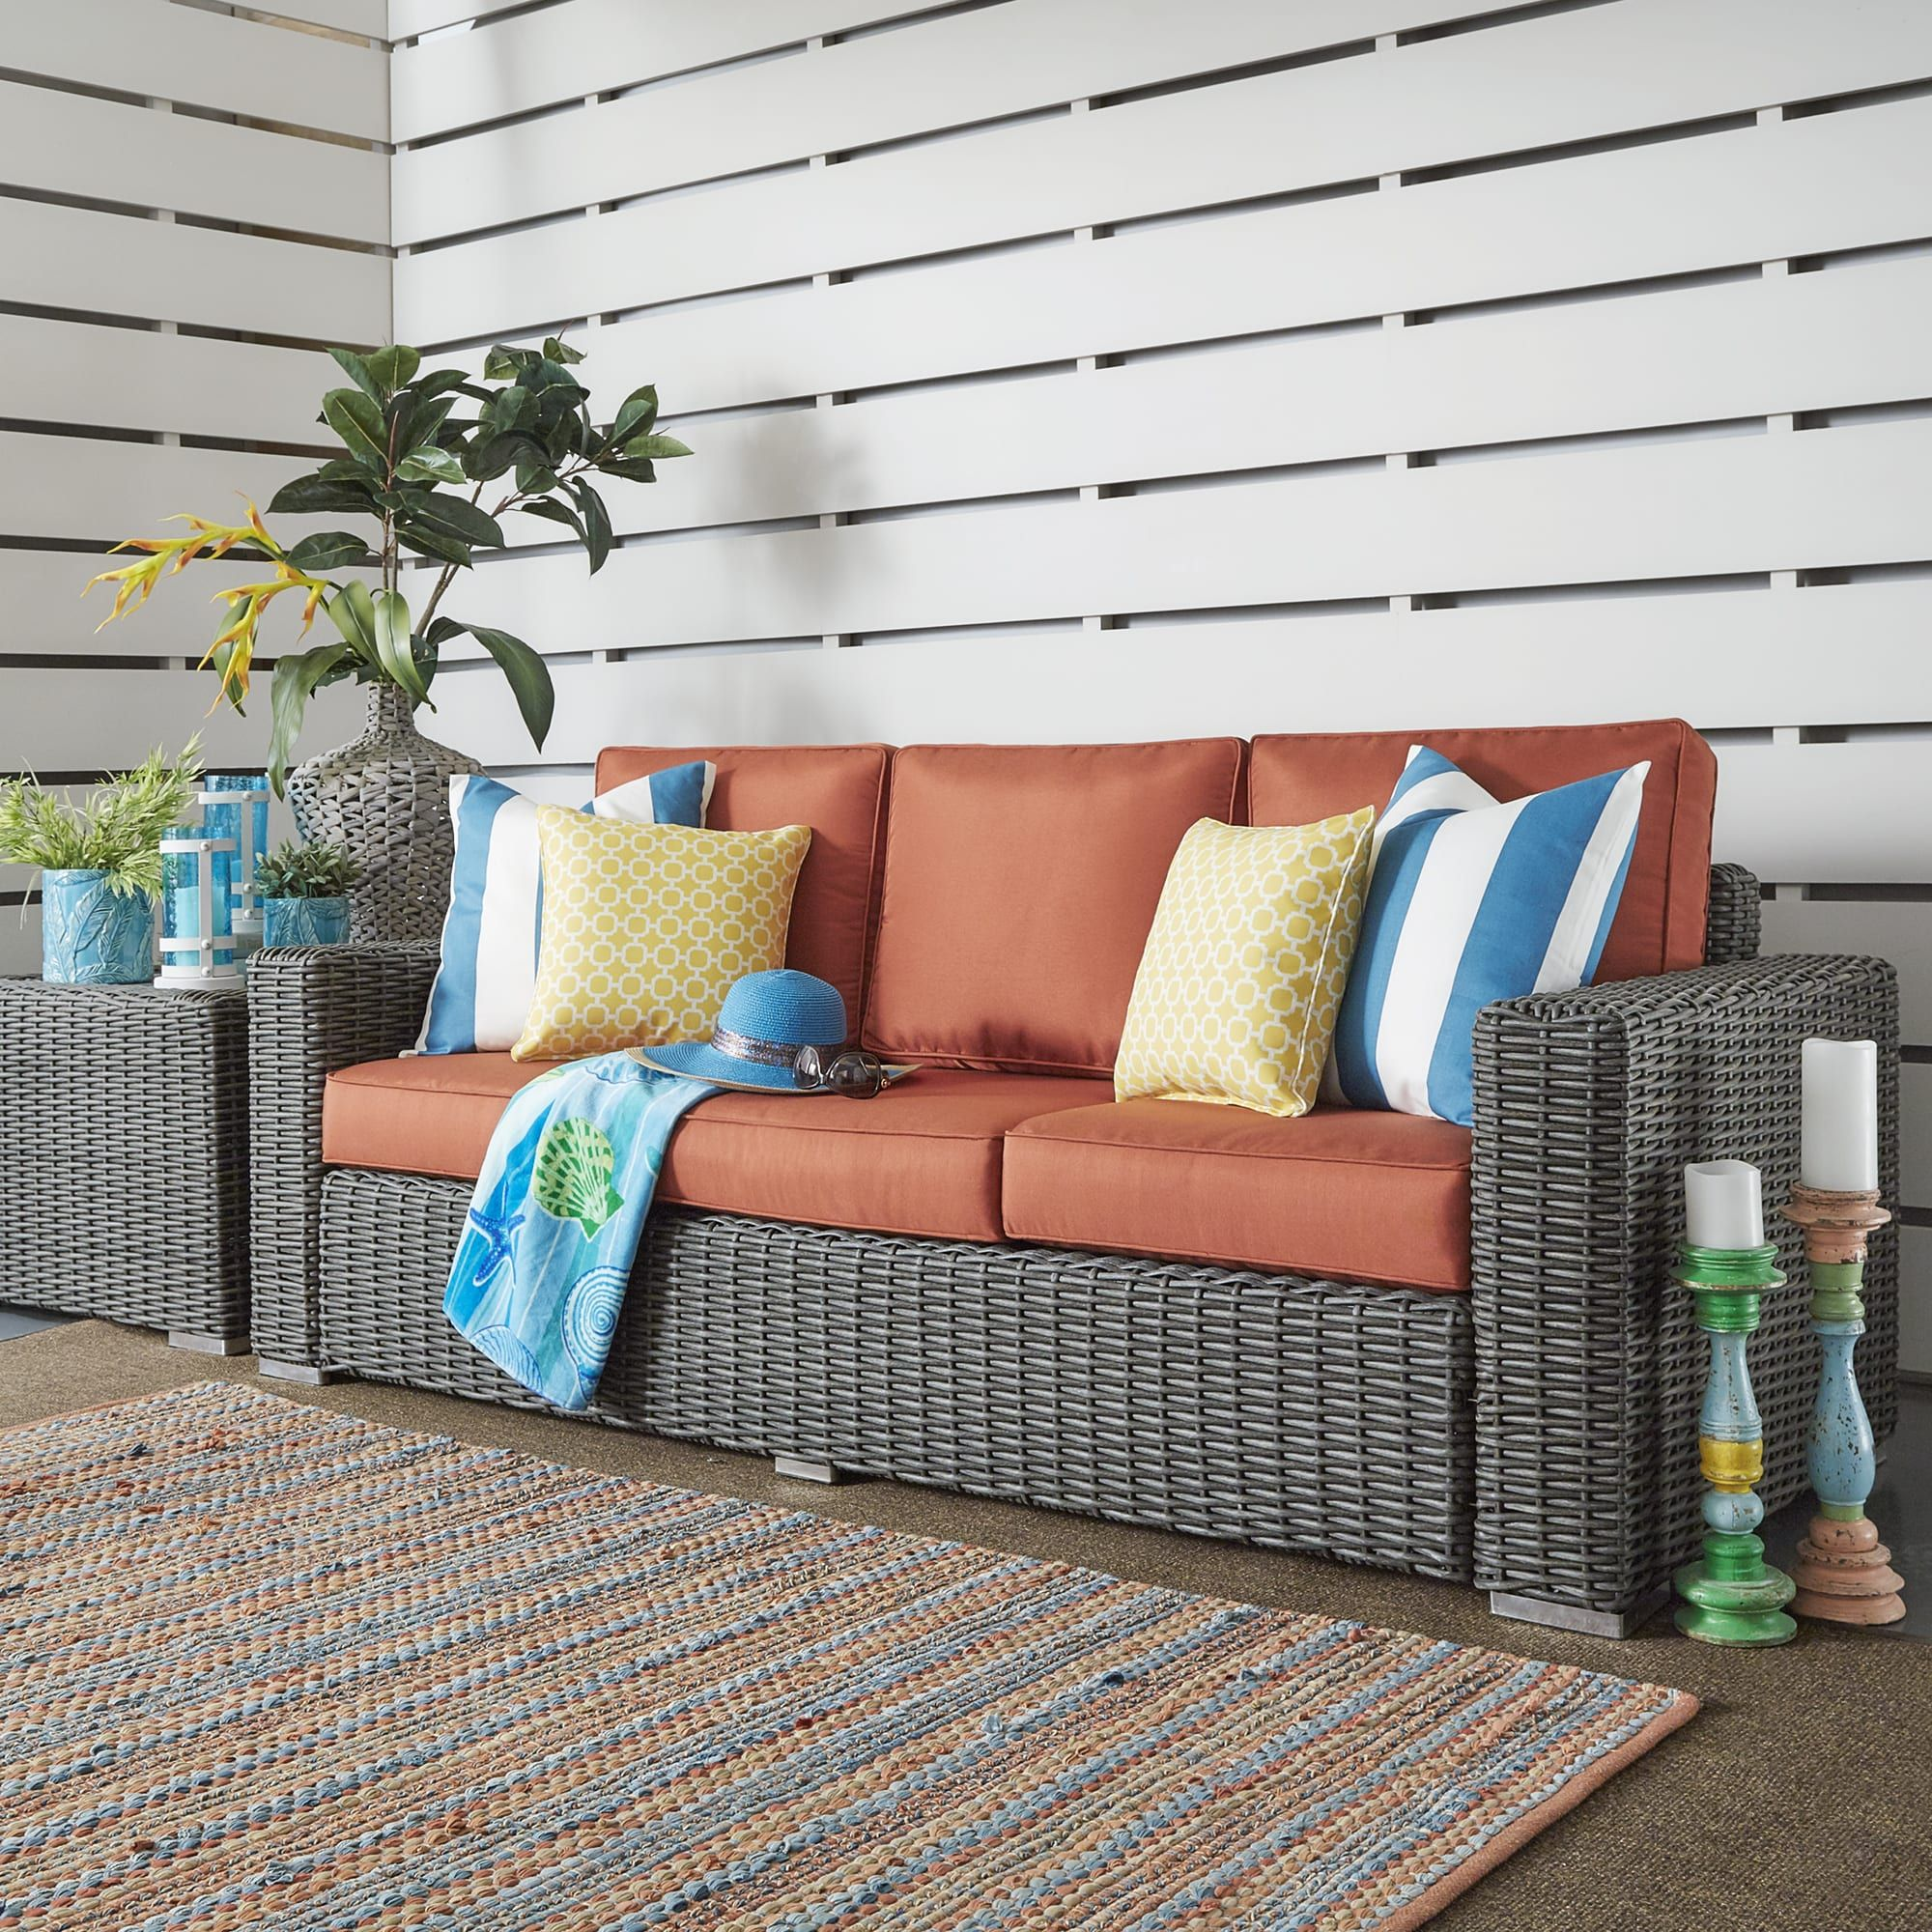 Barbados wicker outdoor cushioned grey charcoal sofa with square arm